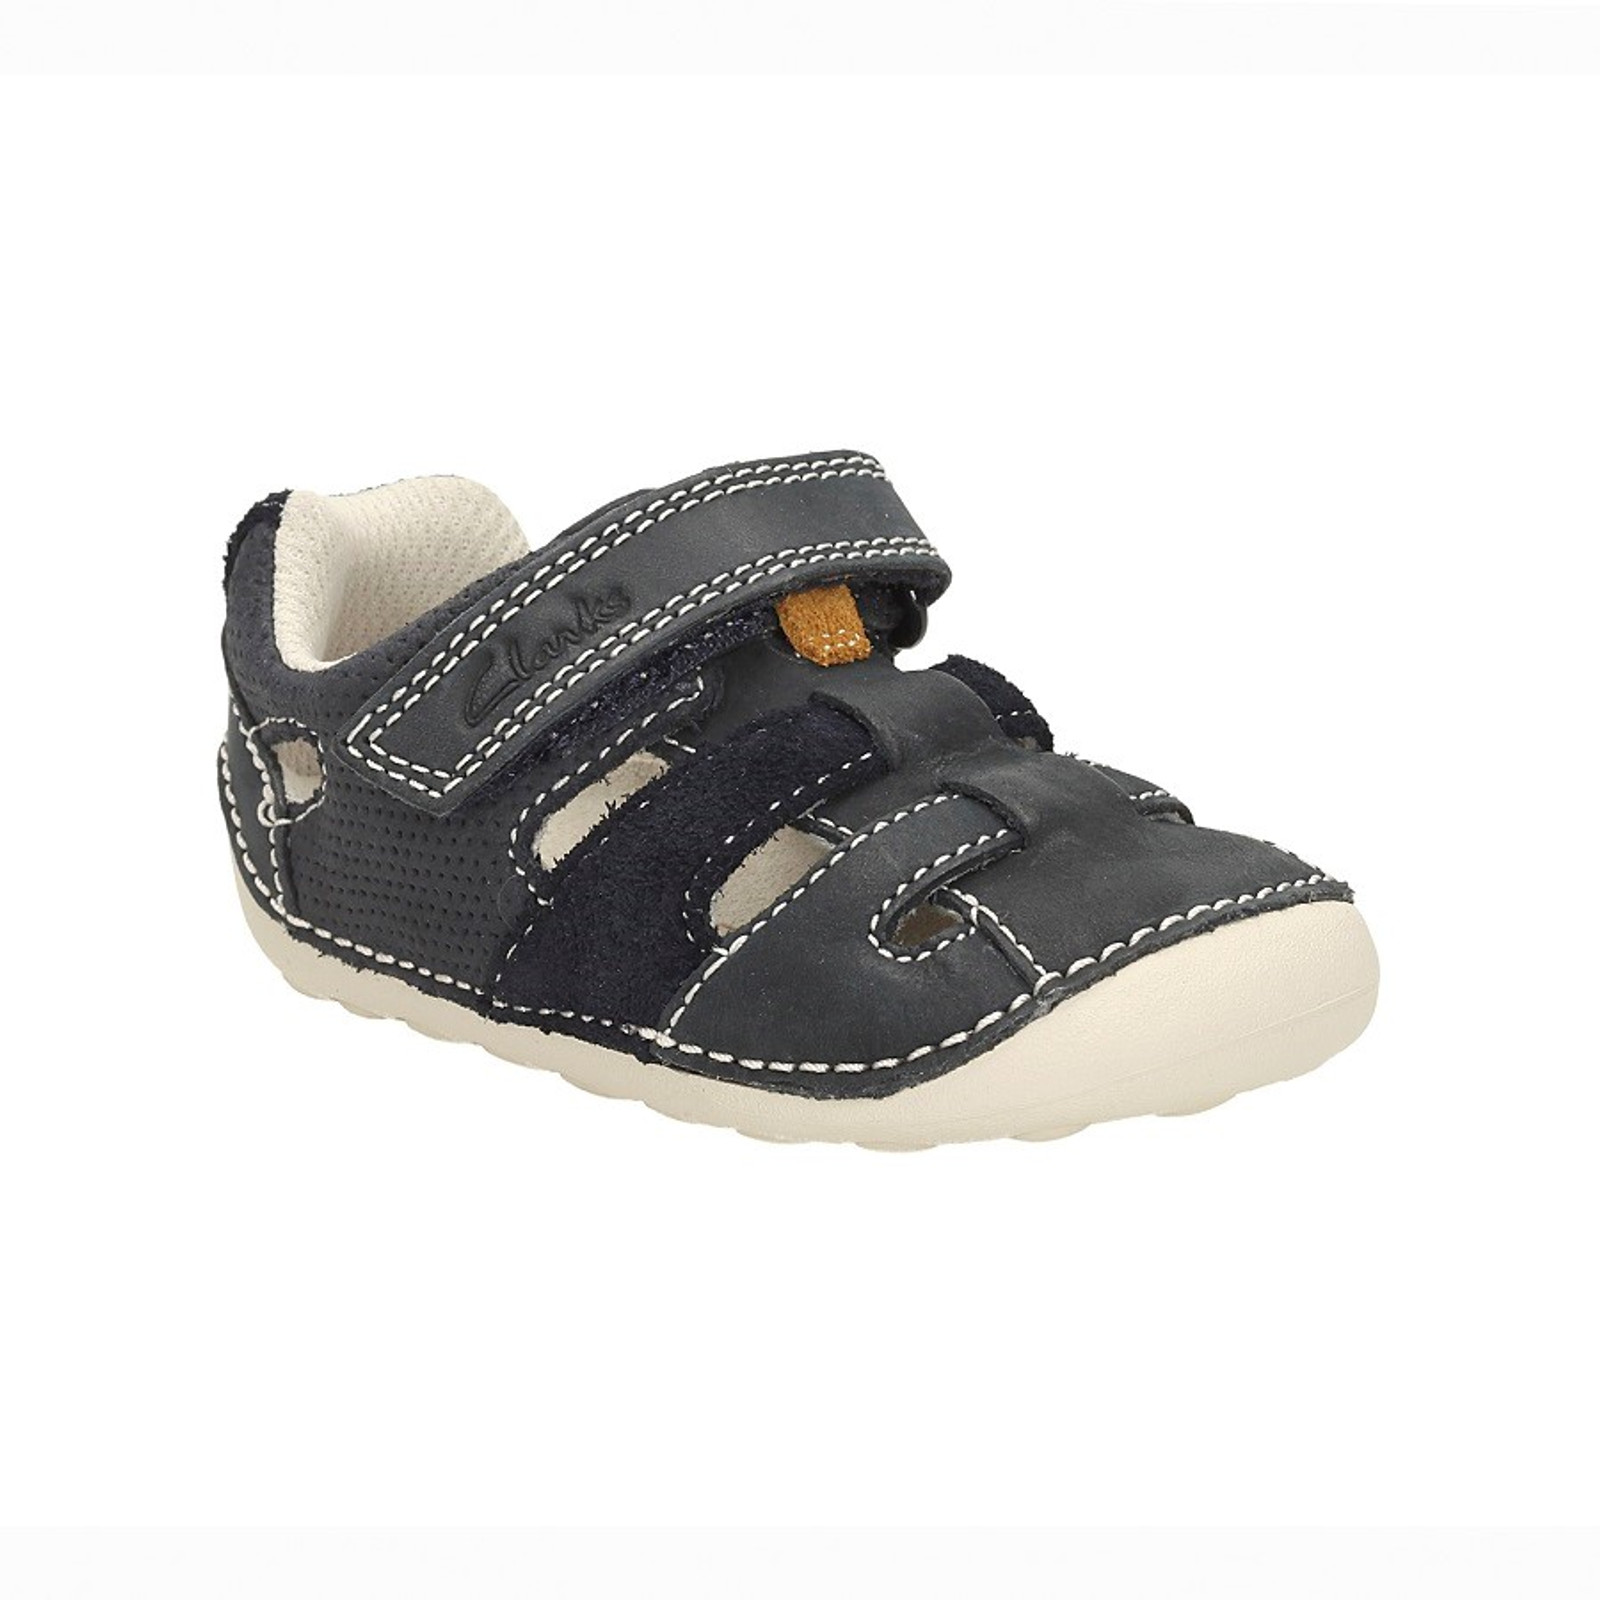 Tiny Artie Boys Clarks Closed Toe First Sandals